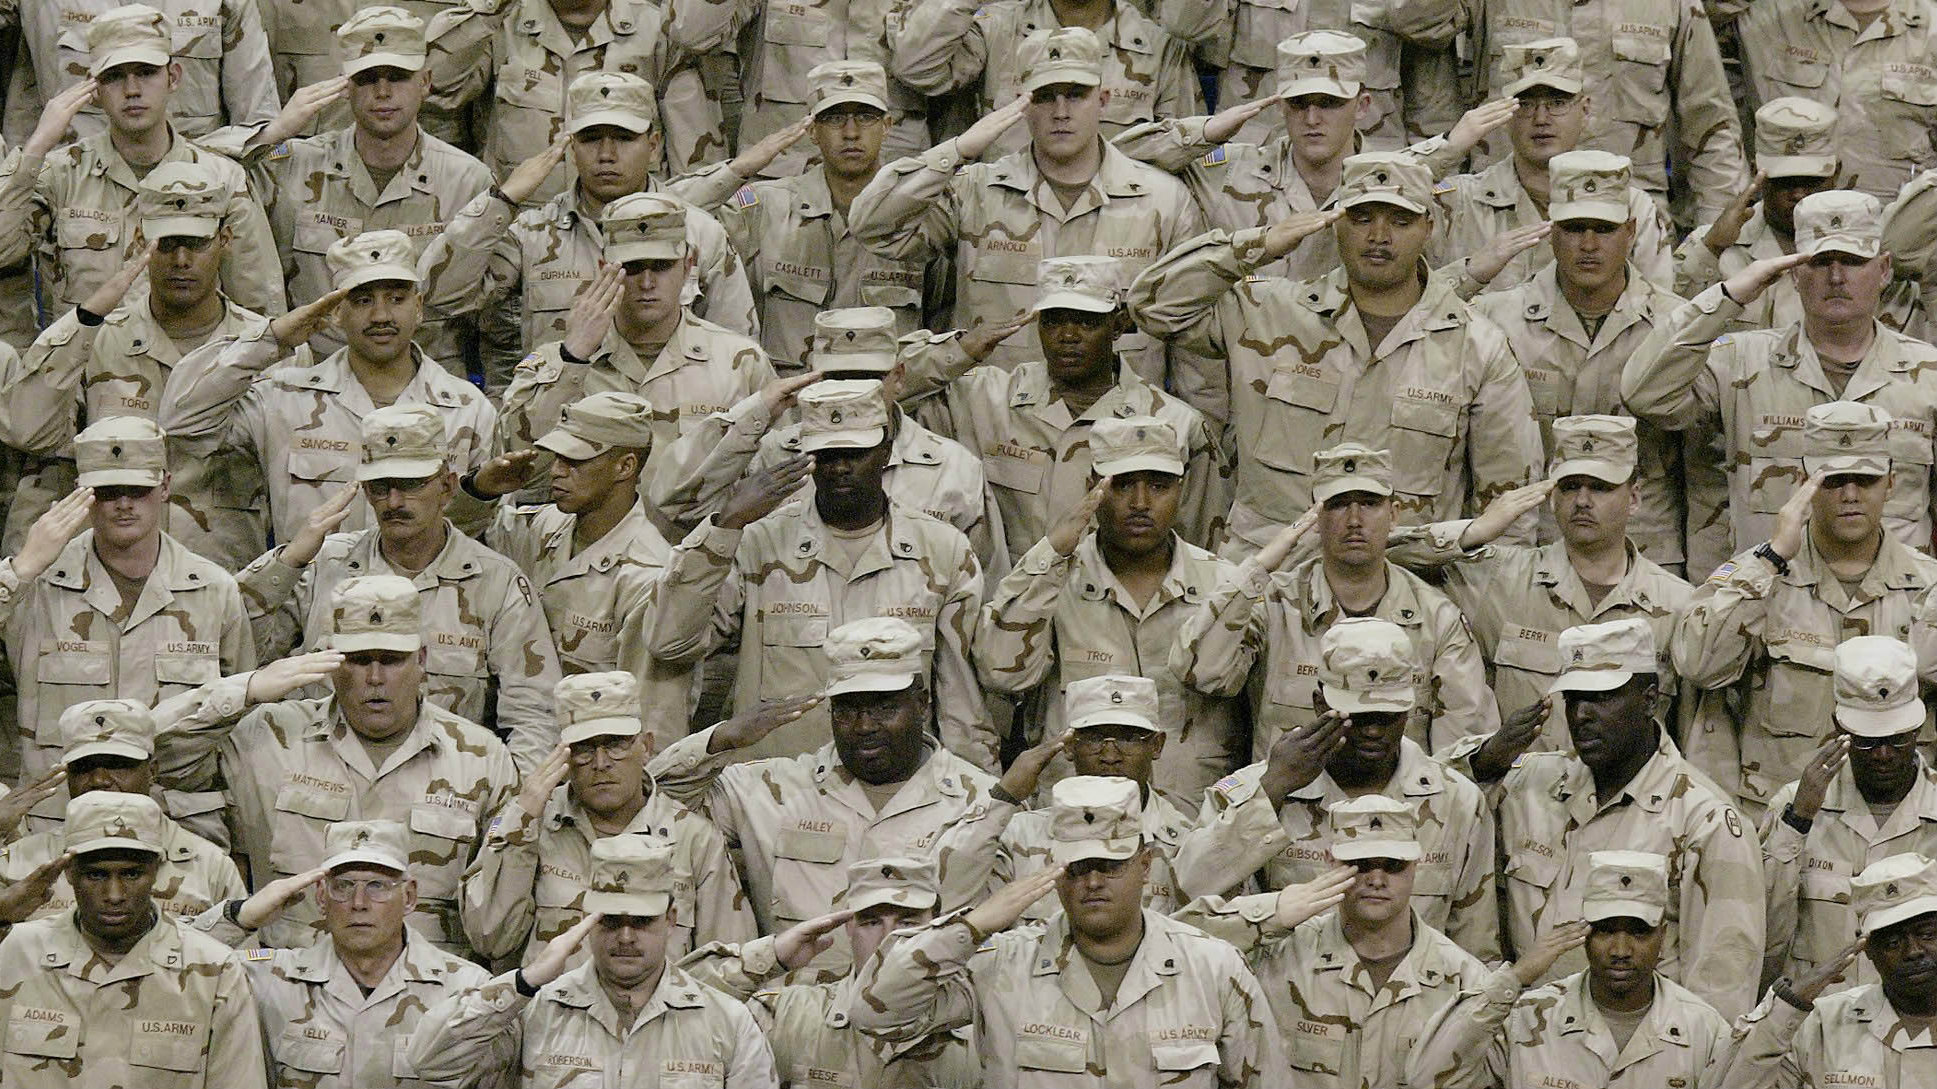 How many now in 2015. military pension on average, for example, the major, n regiment, colonel